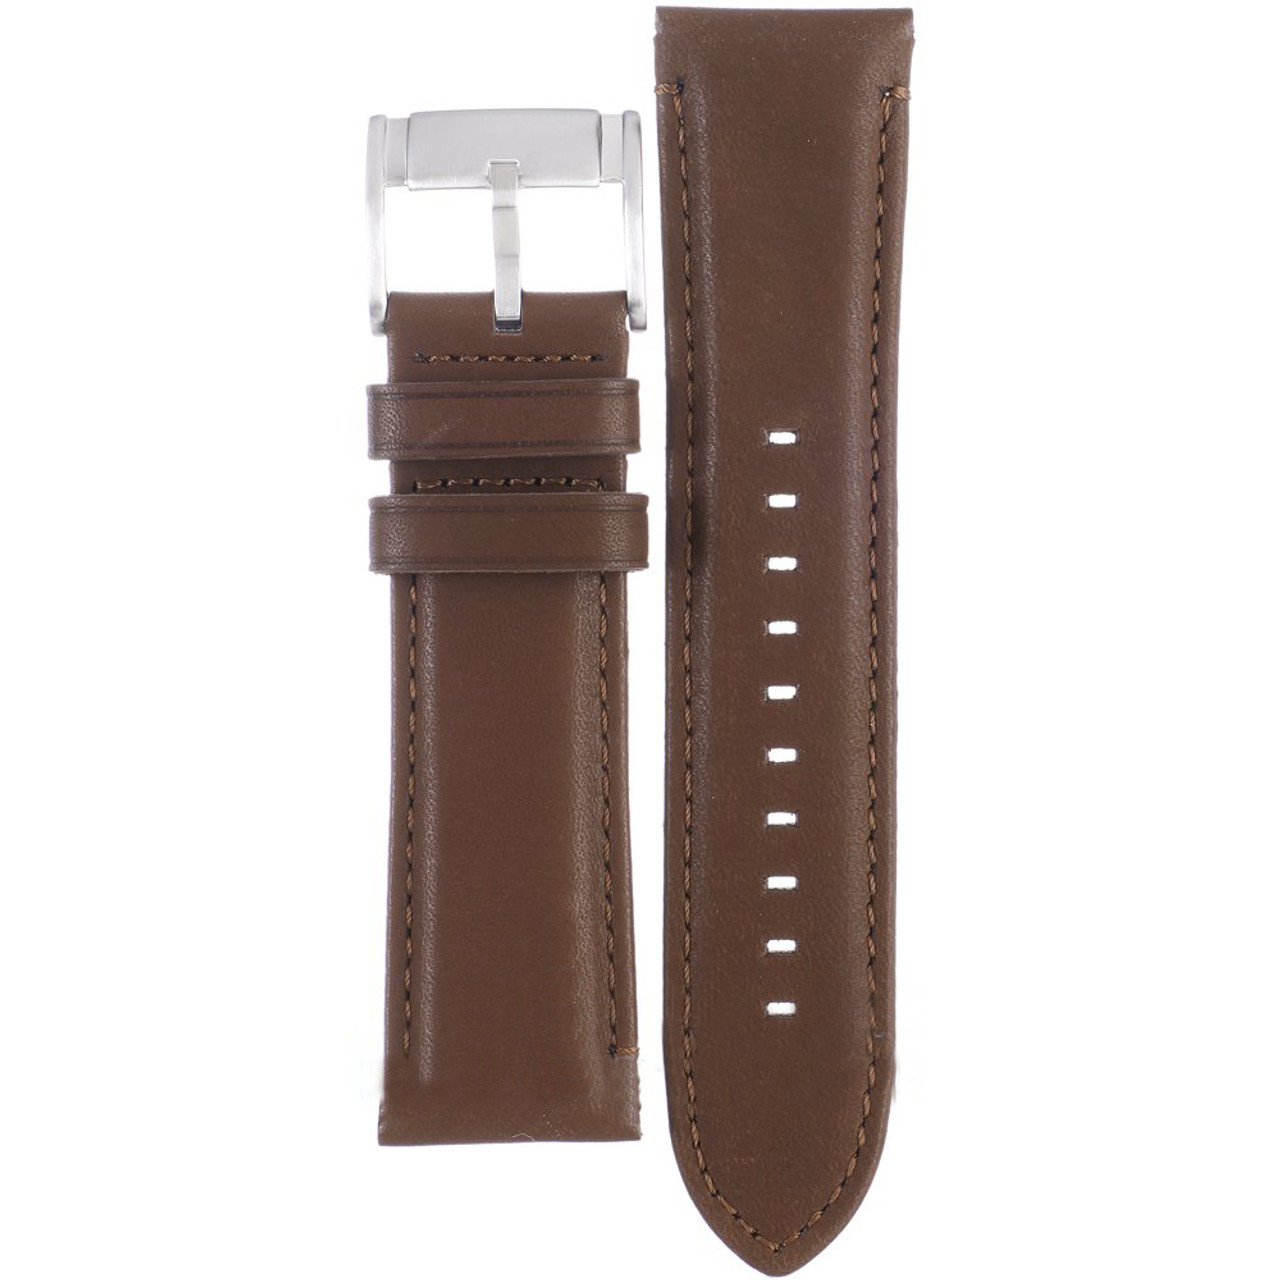 89ecd9908eb46 Fossil Watch Replacement Leather straps For FS4865 | WatchO™